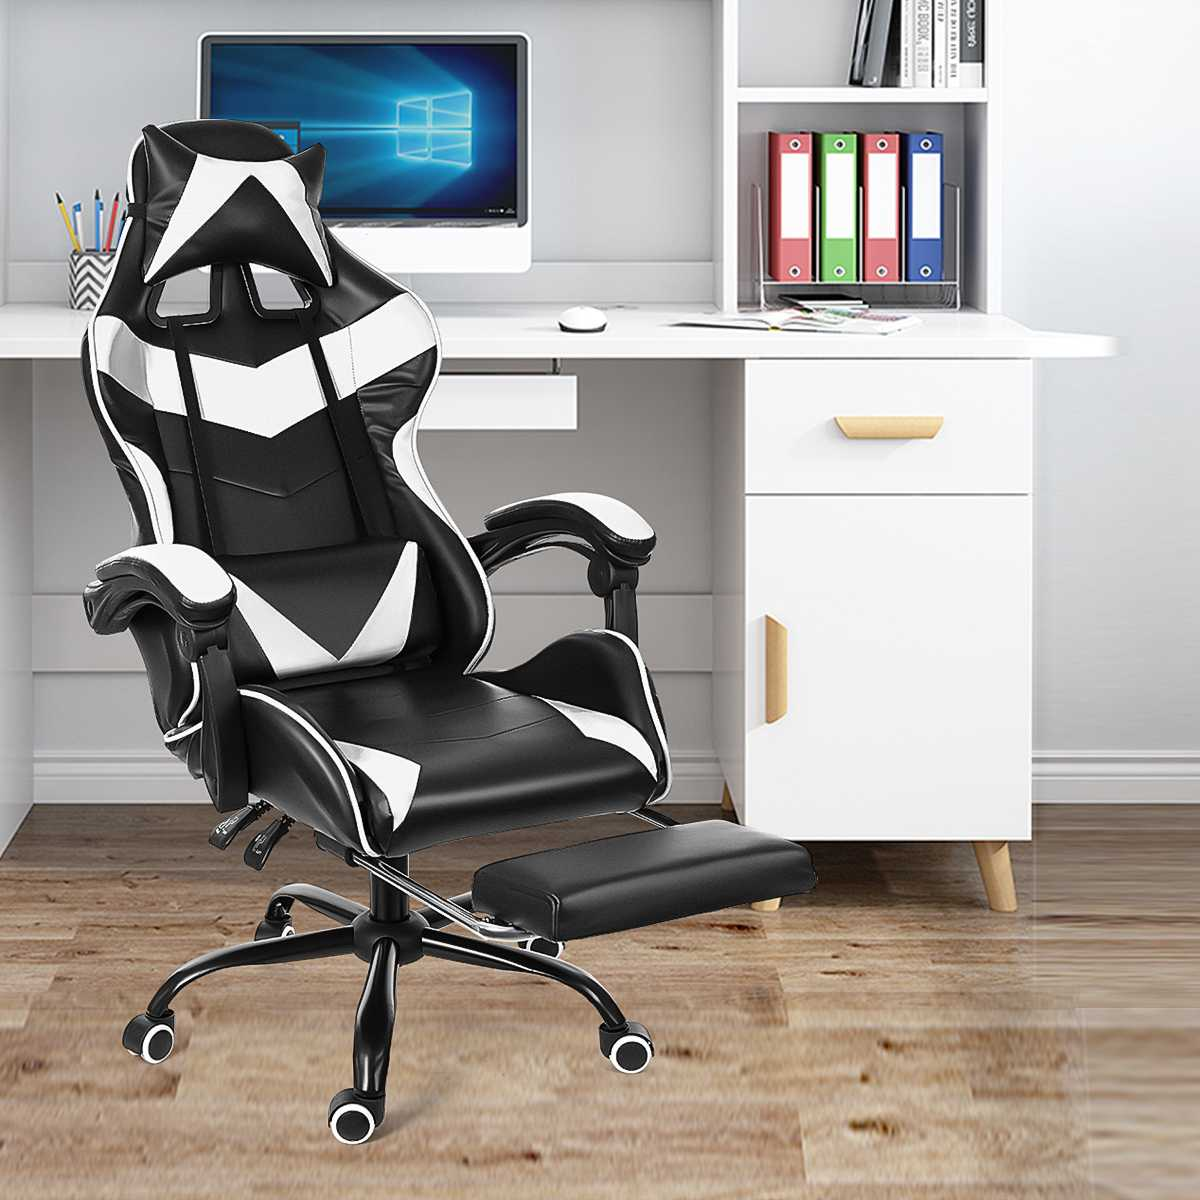 H1883bae1363d461391fd5fe205d337e8C - WCG Gaming Chair Computer Armchair Office Chairs Home Swivel Massage Chair Lifting Adjustable Desk Chair Lying Recliner Chair